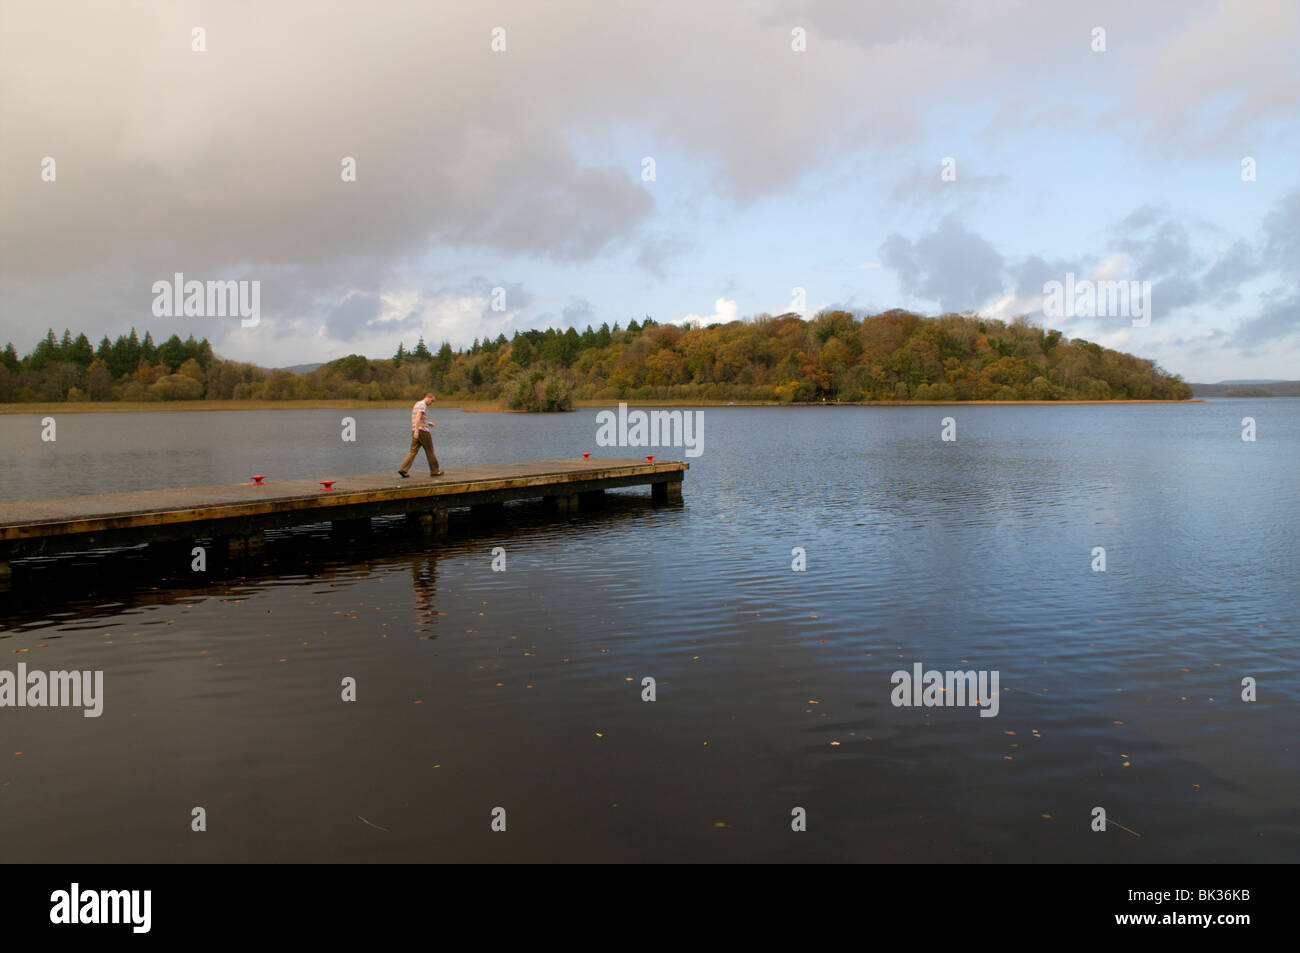 Man walks to the edge of the water on a jetty - Stock Image